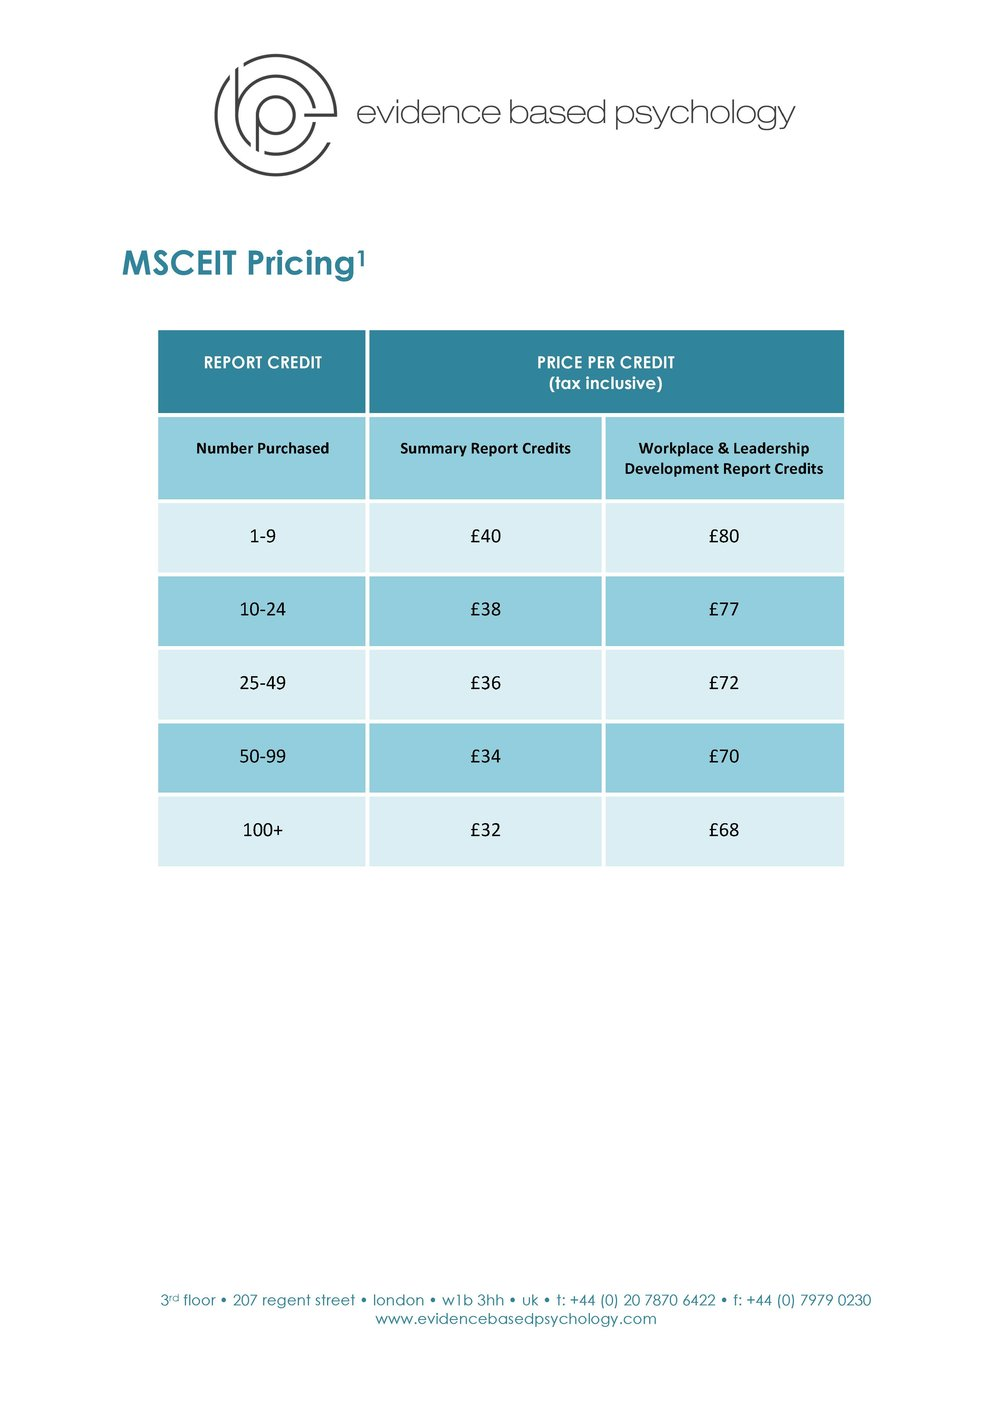 02 MSCEIT Pricing UK 2017 NEW.jpg